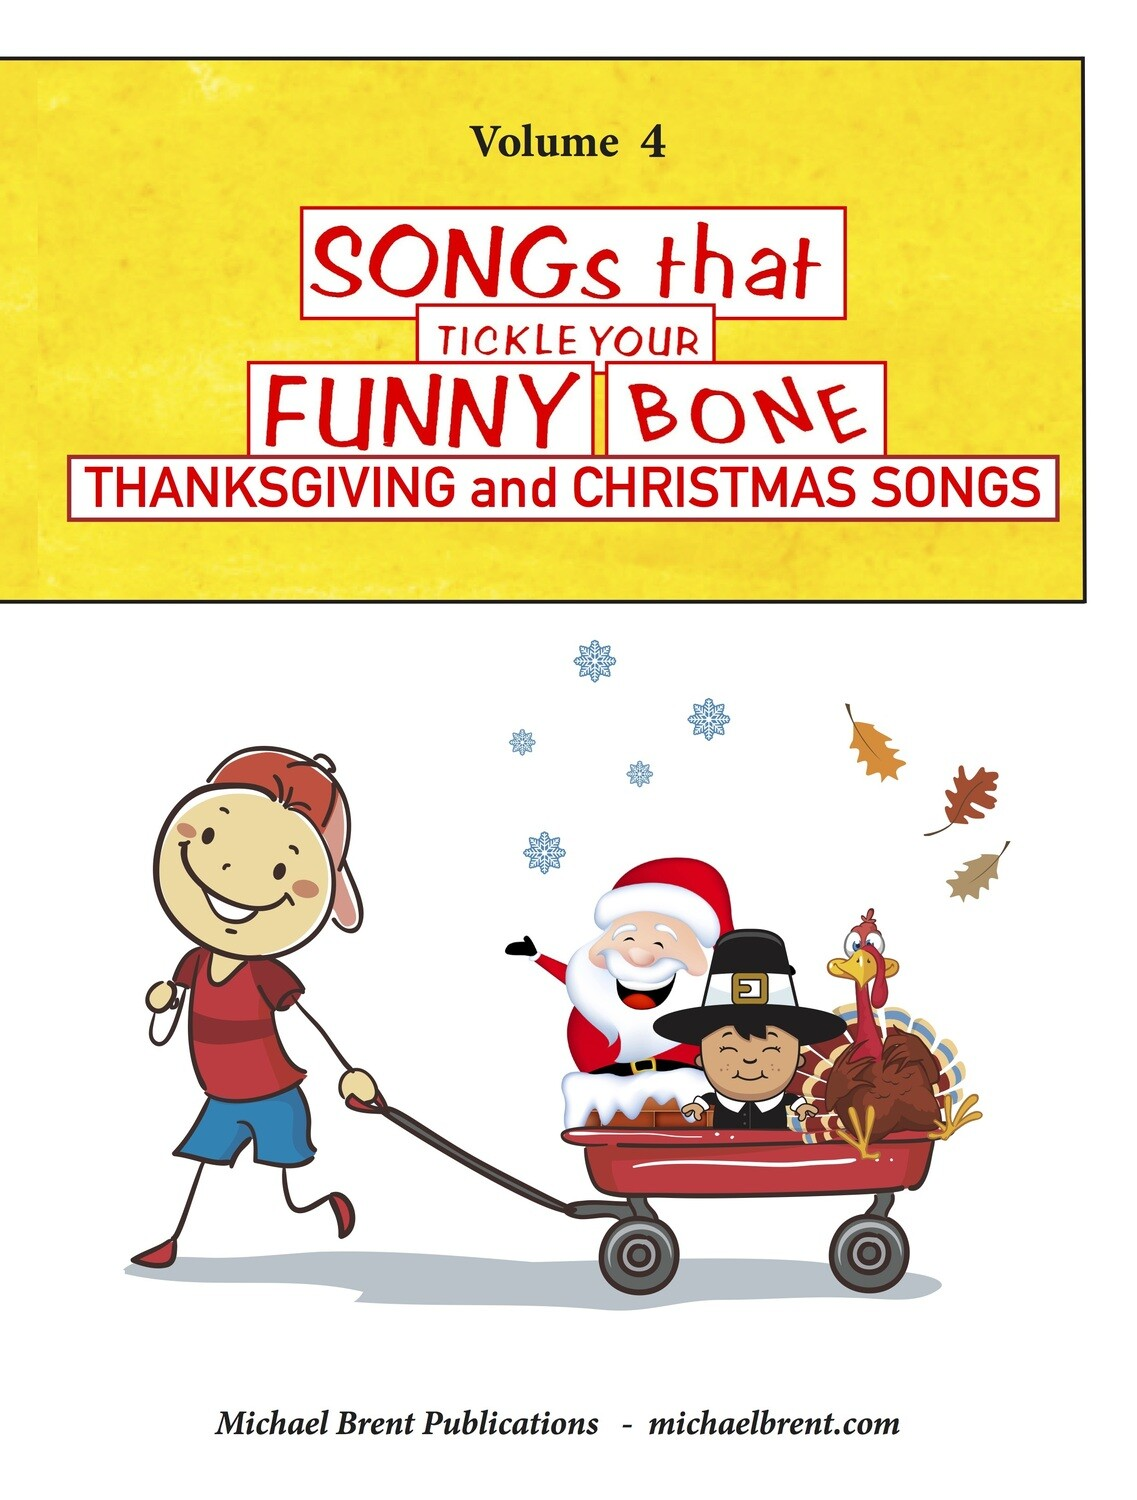 Songs that Tickle Your Funny Bone, Vol. 4 - Songbook